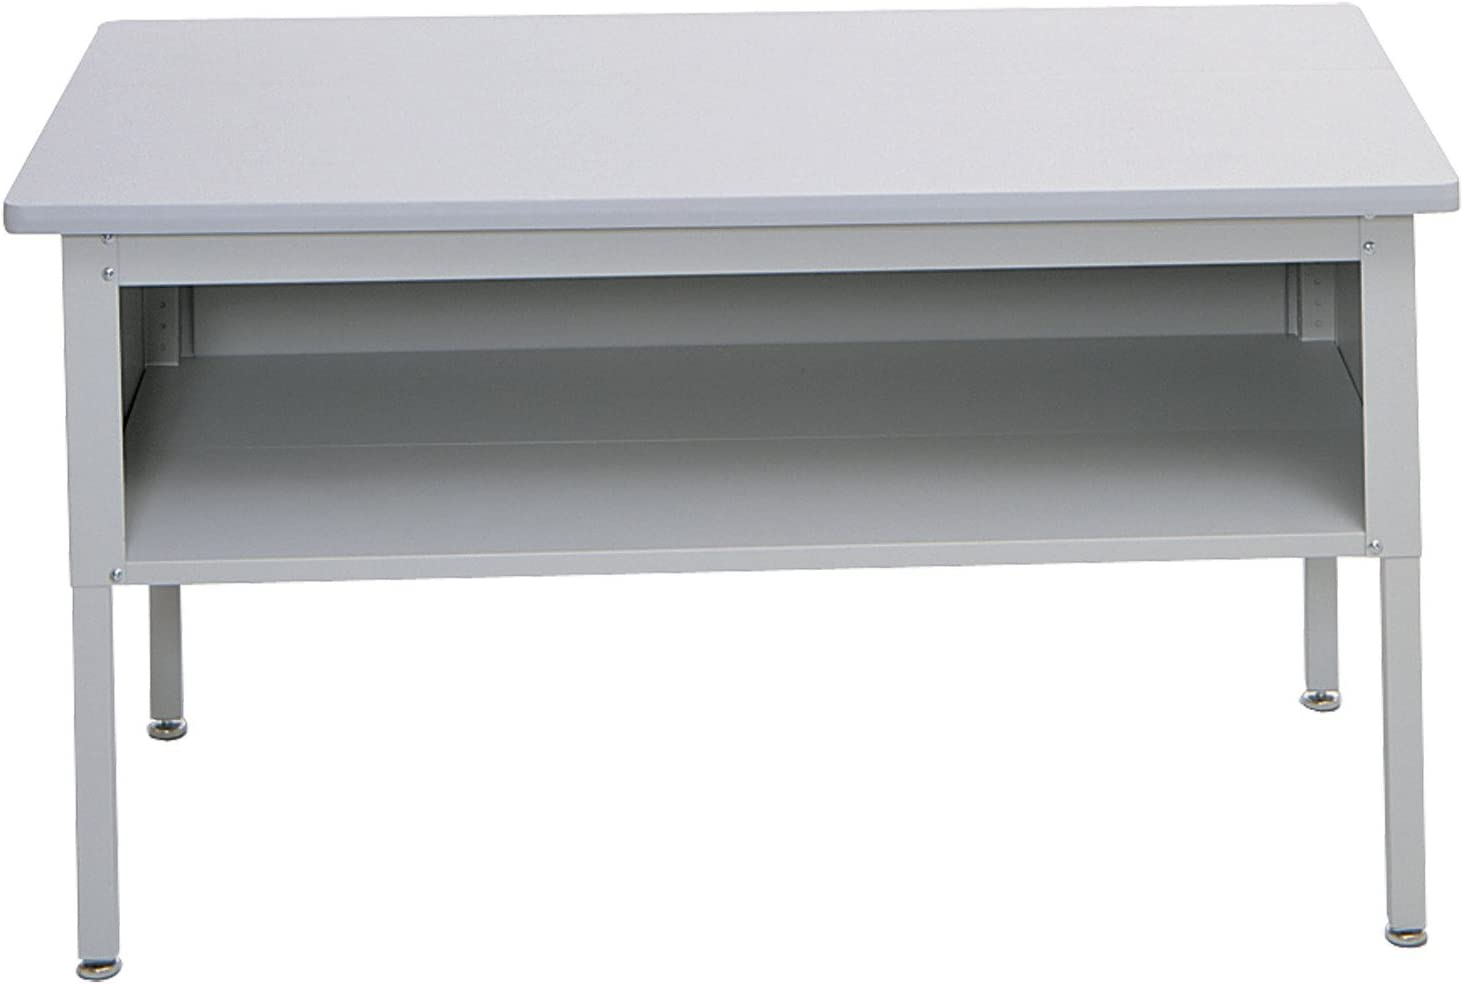 Safco Products E-Z Sort Mail Station Sorting Table with Shelf, Gray